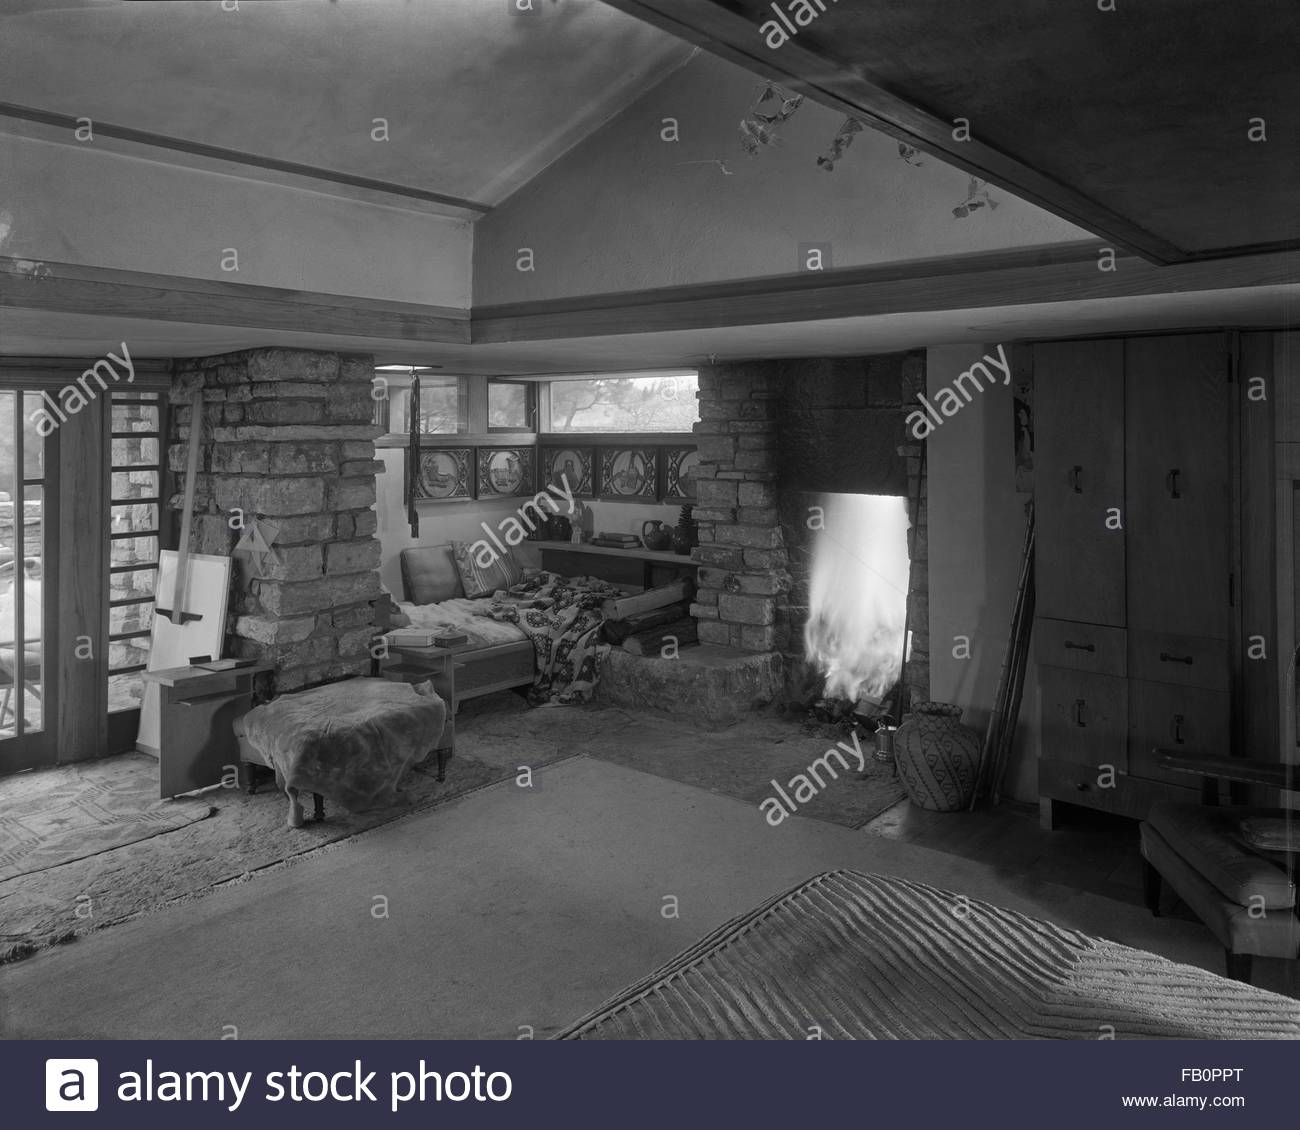 Taliesin East in Spring Green (Wis.), 1937 Dec. Living room corner with fireplace. - Stock Image